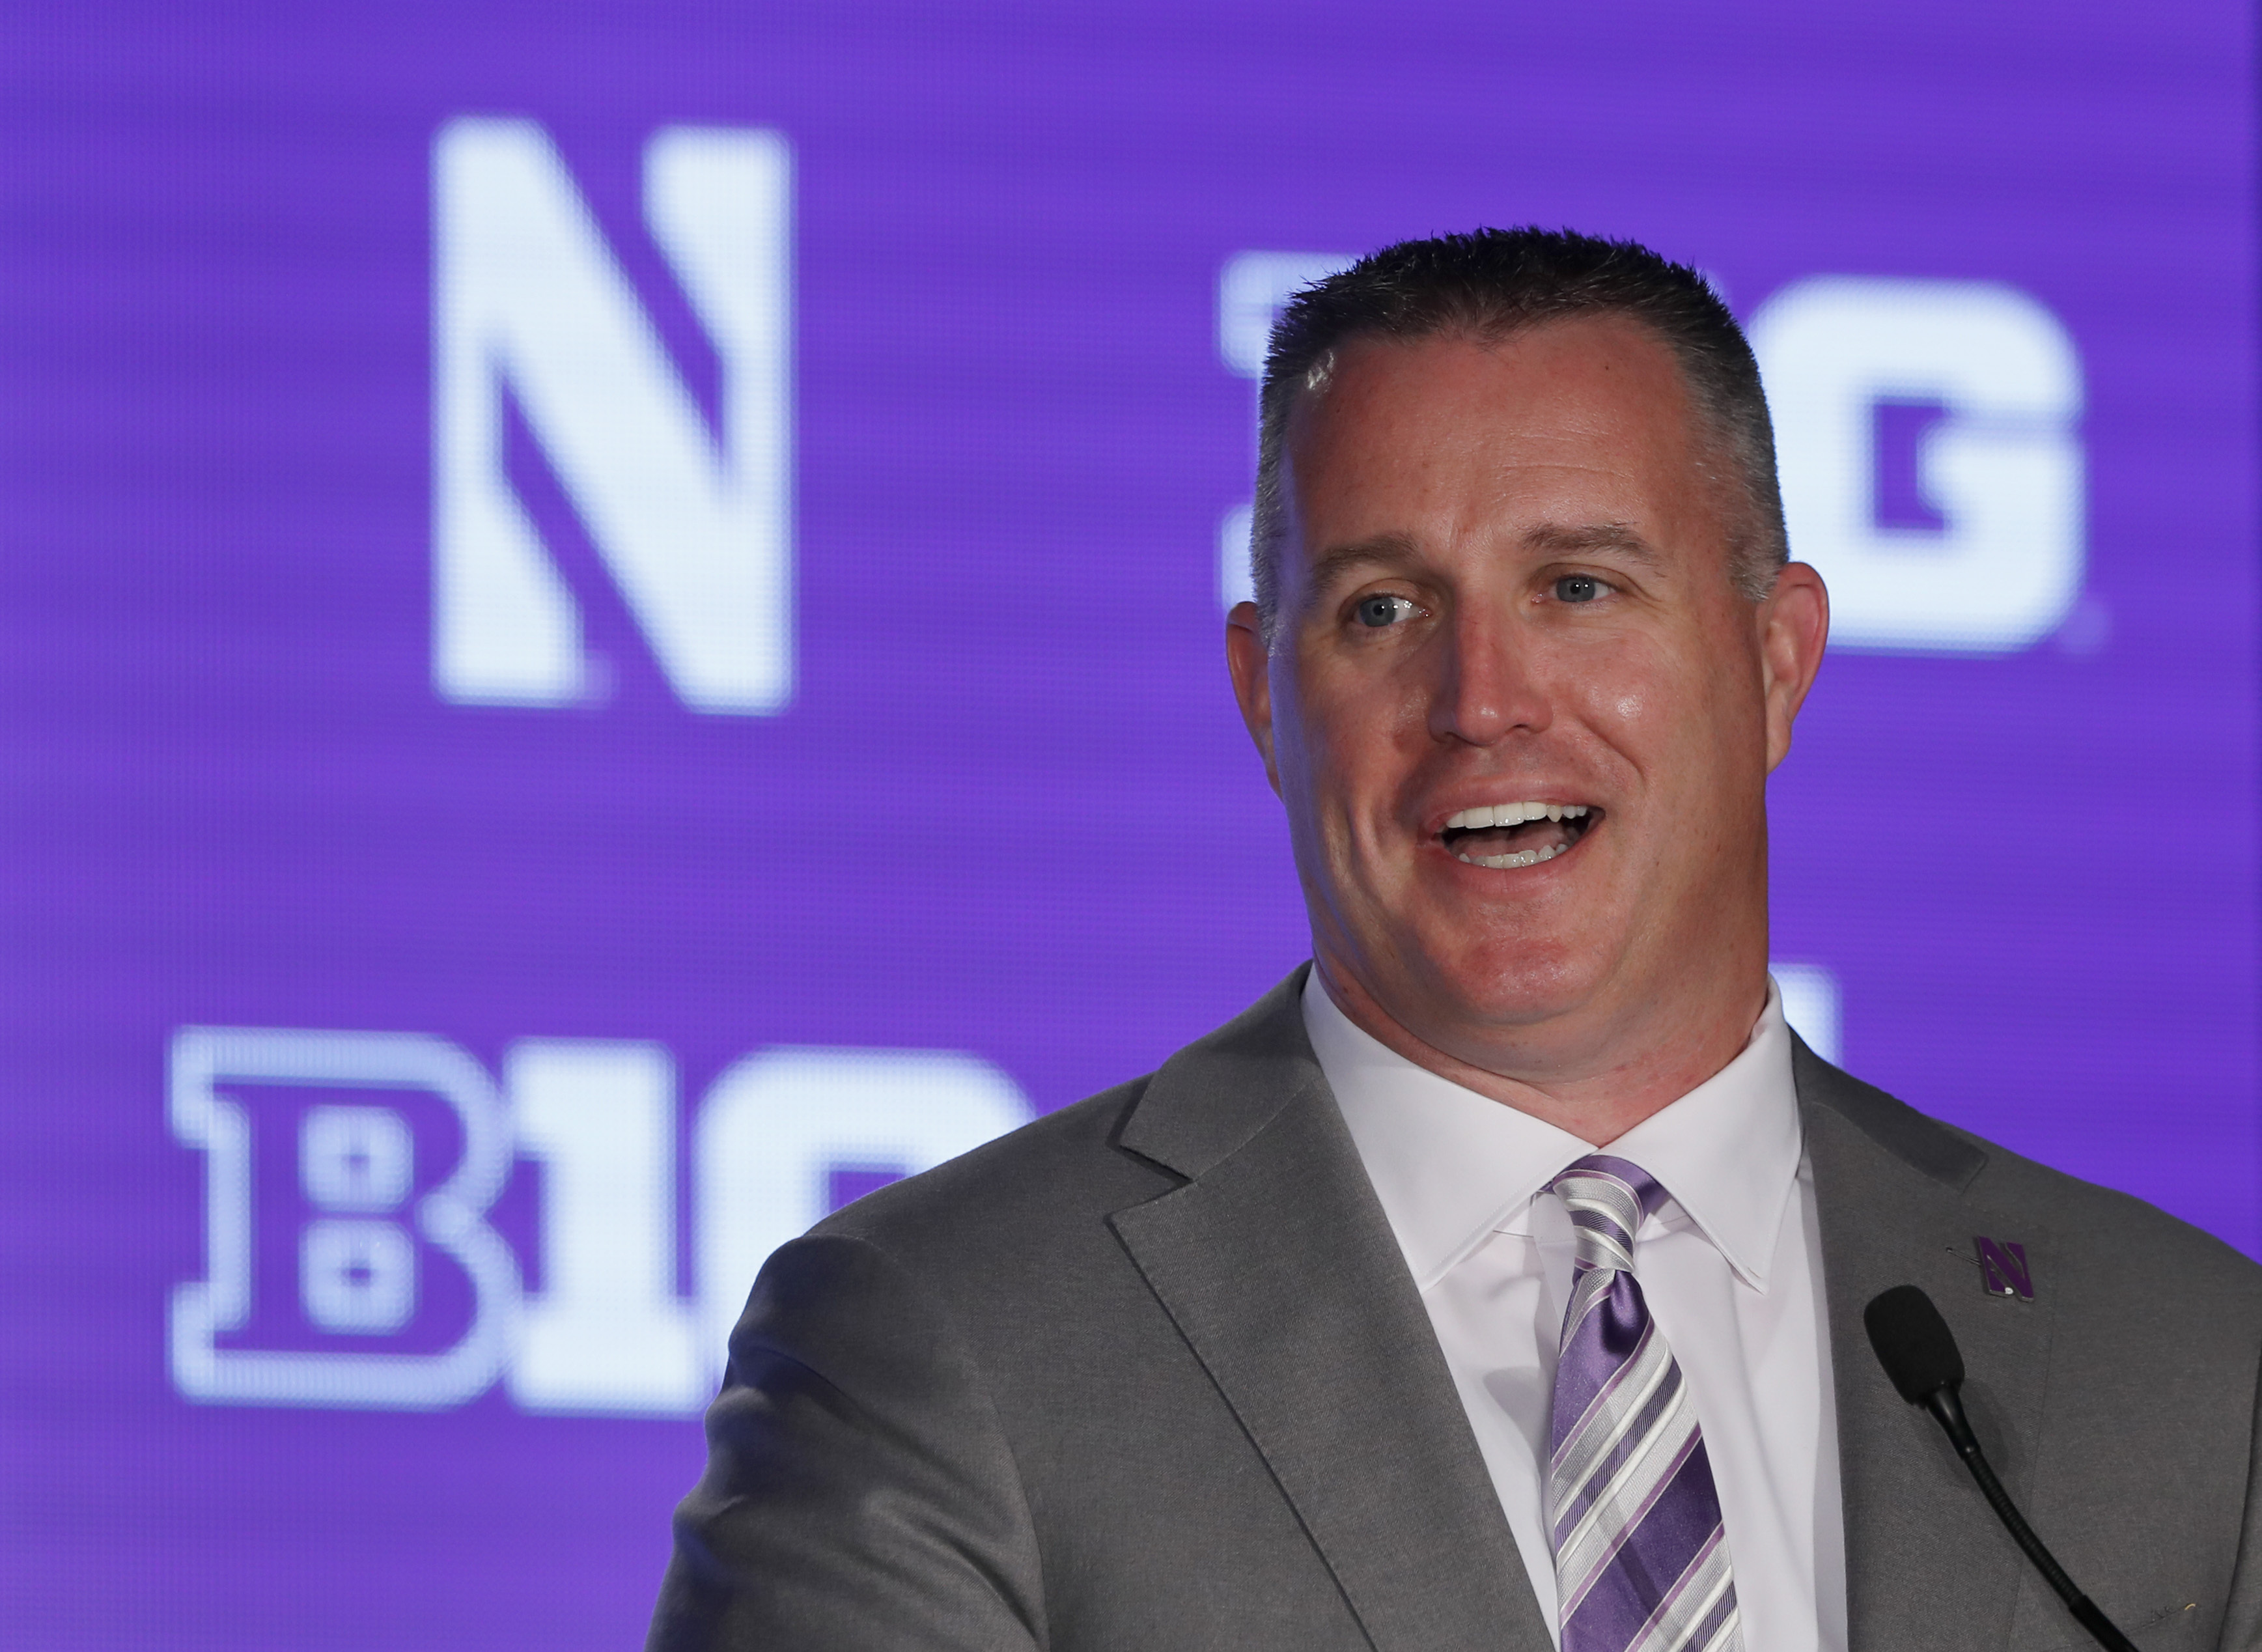 Northwestern head coach Pat Fitzgerald responds to a question during the Big Ten Conference NCAA college football media days Friday, July 19, 2019, in Chicago.